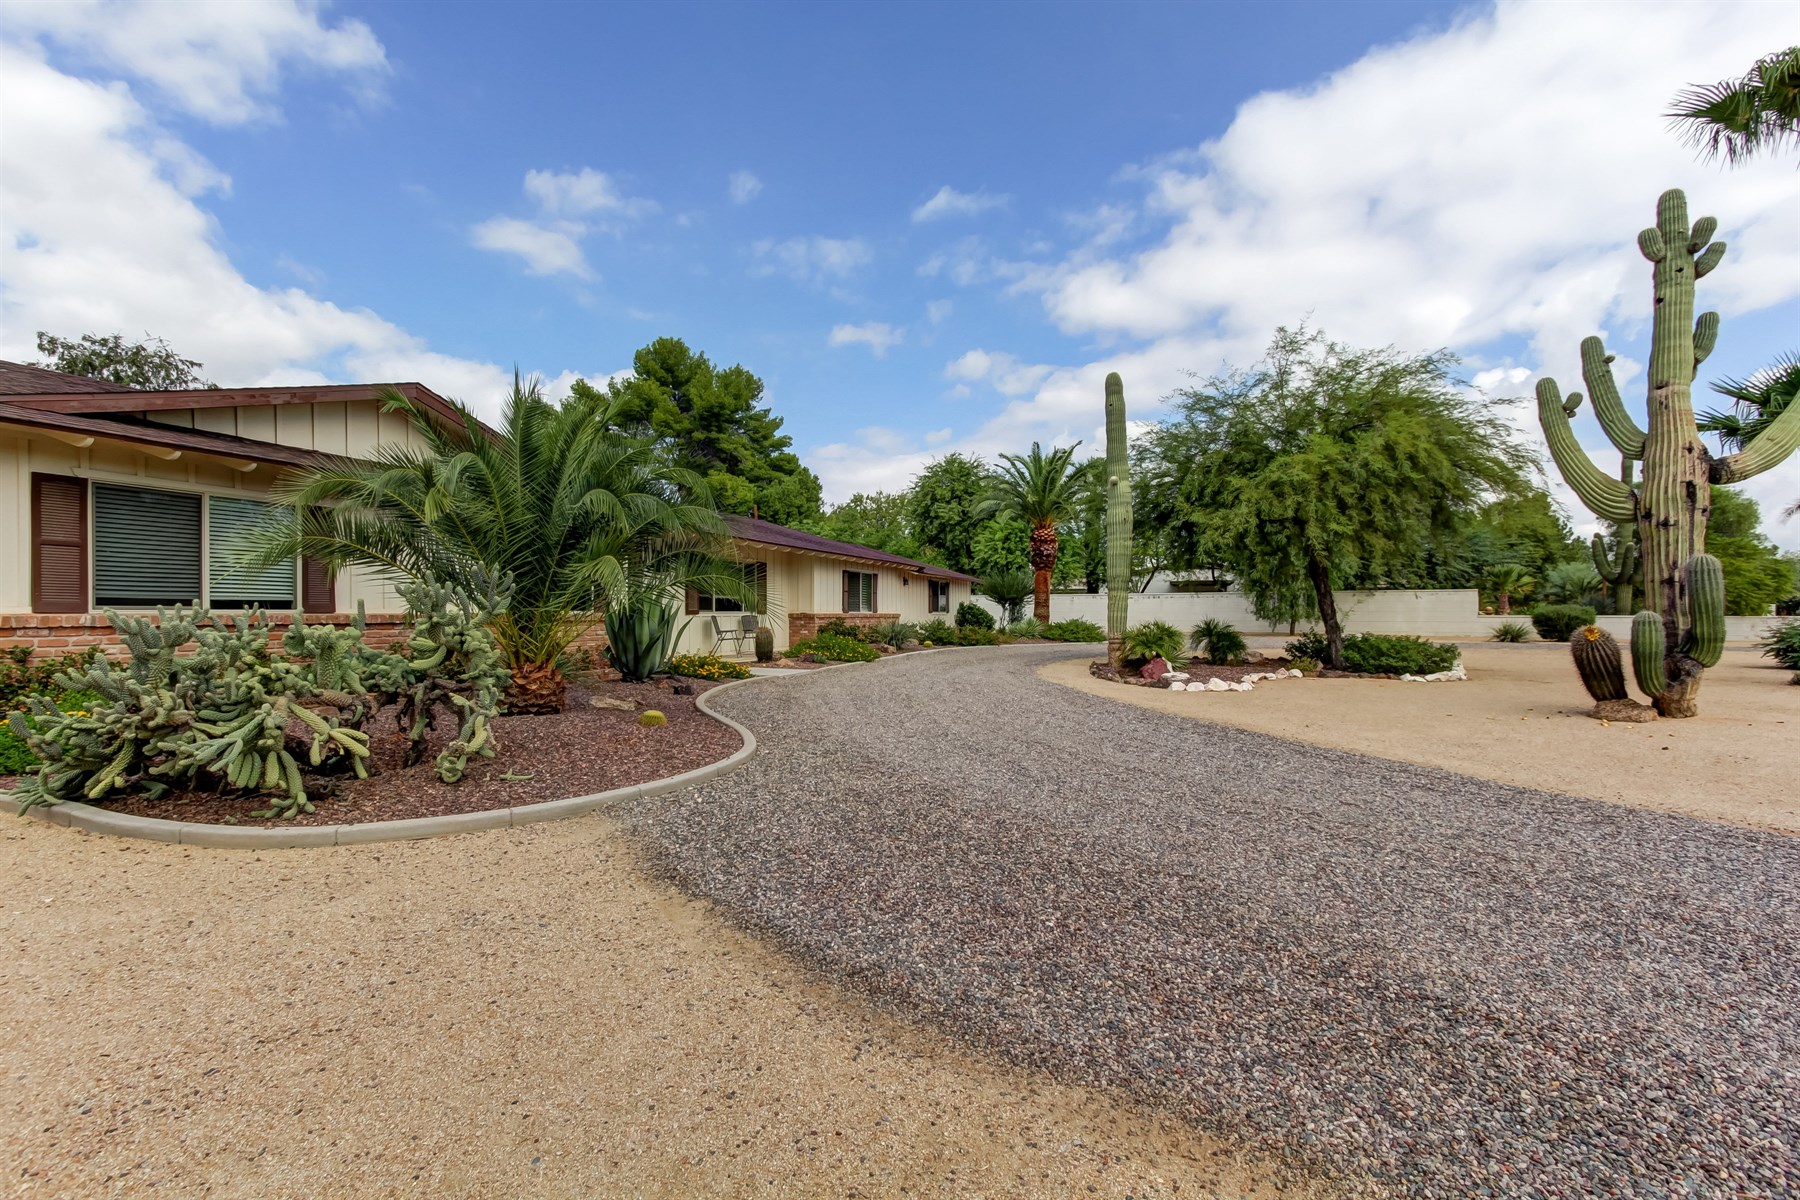 獨棟家庭住宅 為 出售 在 Amazing renovated ranch style home 10832 N Sundown Dr Scottsdale, 亞利桑那州, 85260 美國